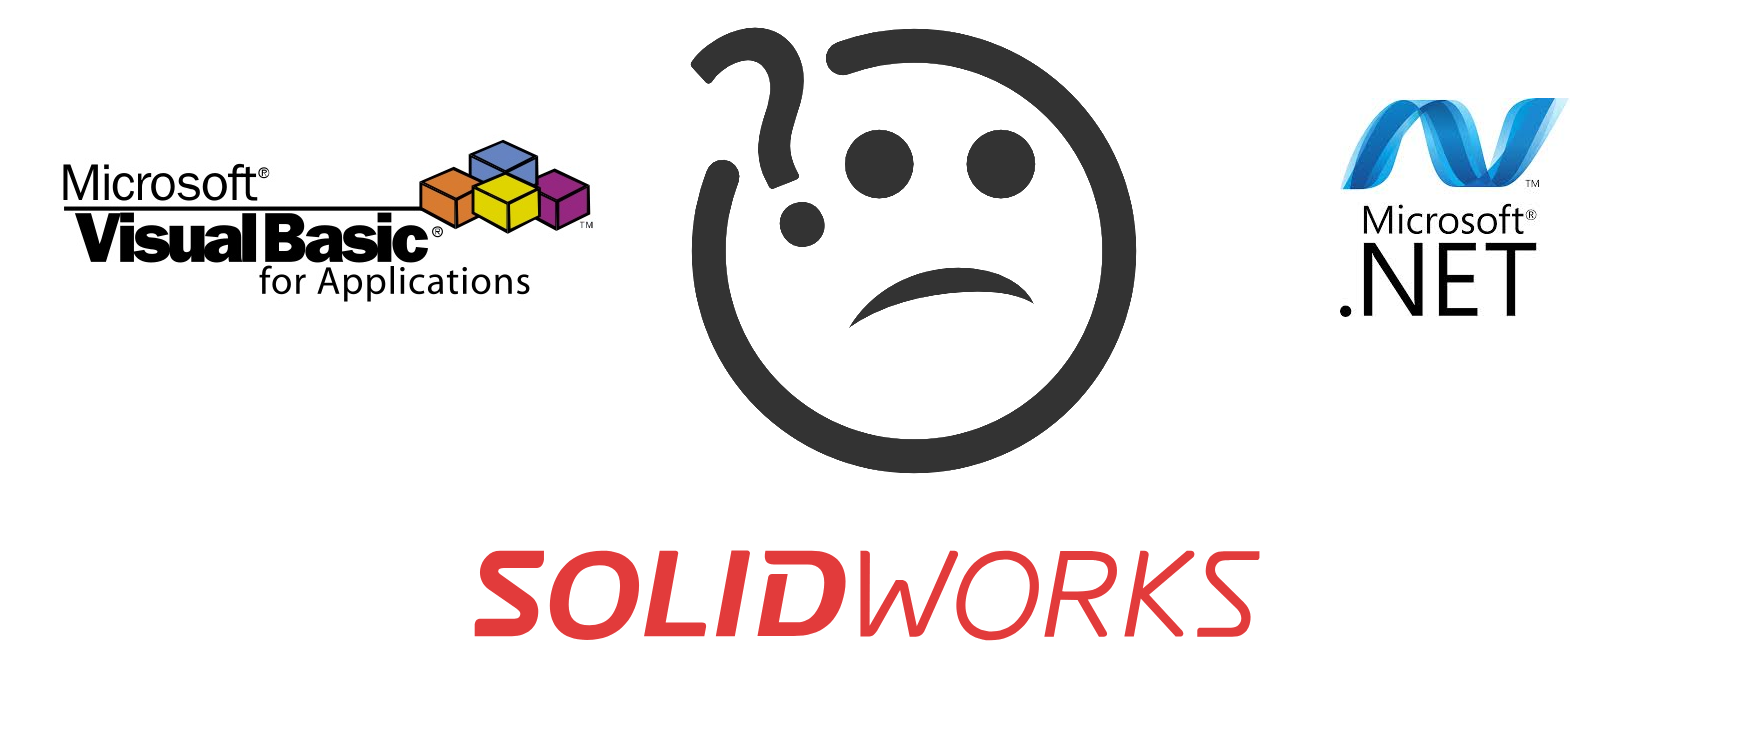 SOLIDWORKS VBA vs SOLIDWORKS .NET